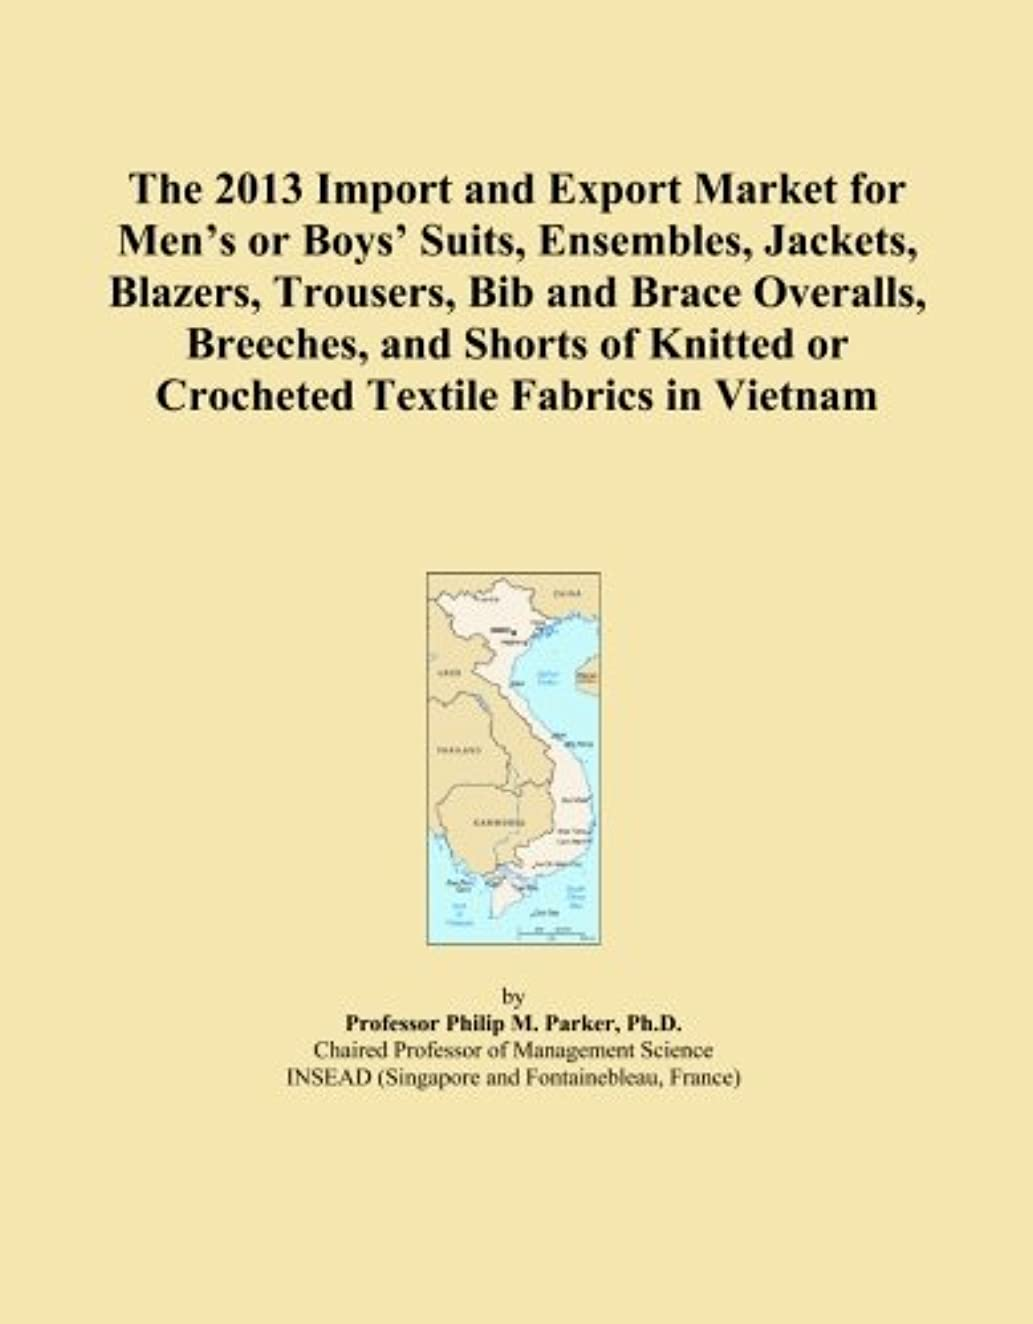 The 2013 Import and Export Market for Men's or Boys' Suits, Ensembles, Jackets, Blazers, Trousers, Bib and Brace Overalls, Breeches, and Shorts of Knitted or Crocheted Textile Fabrics in Vietnam